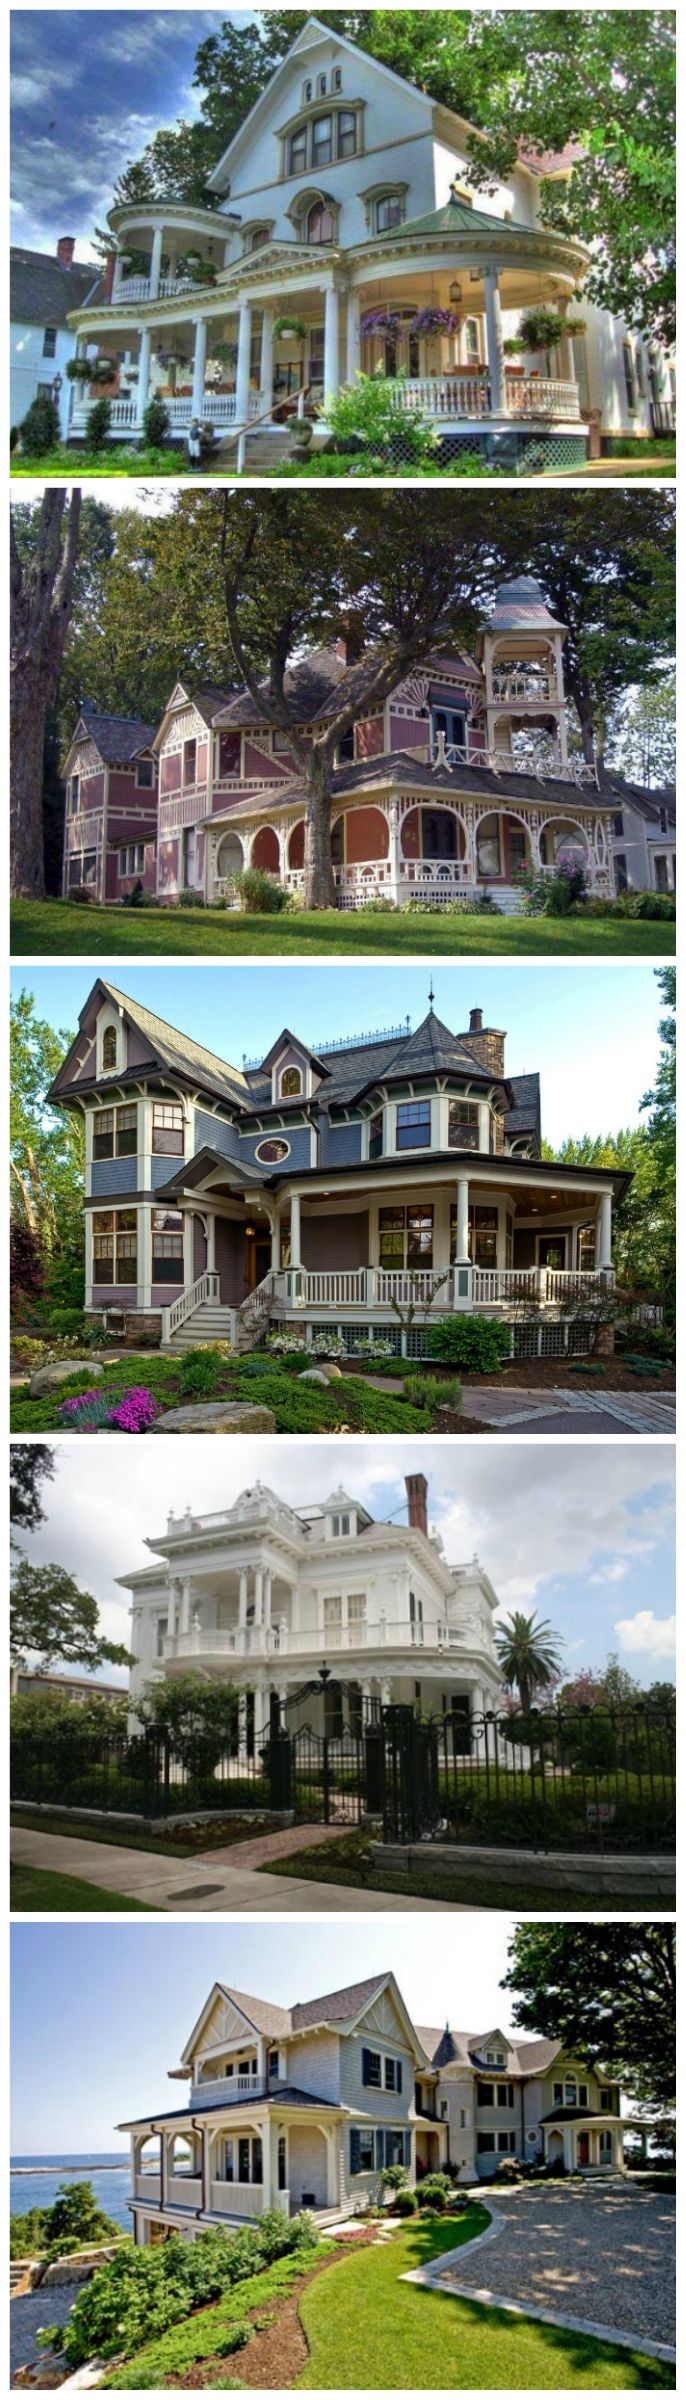 victorian style: beautiful home design. all beautiful but i choose